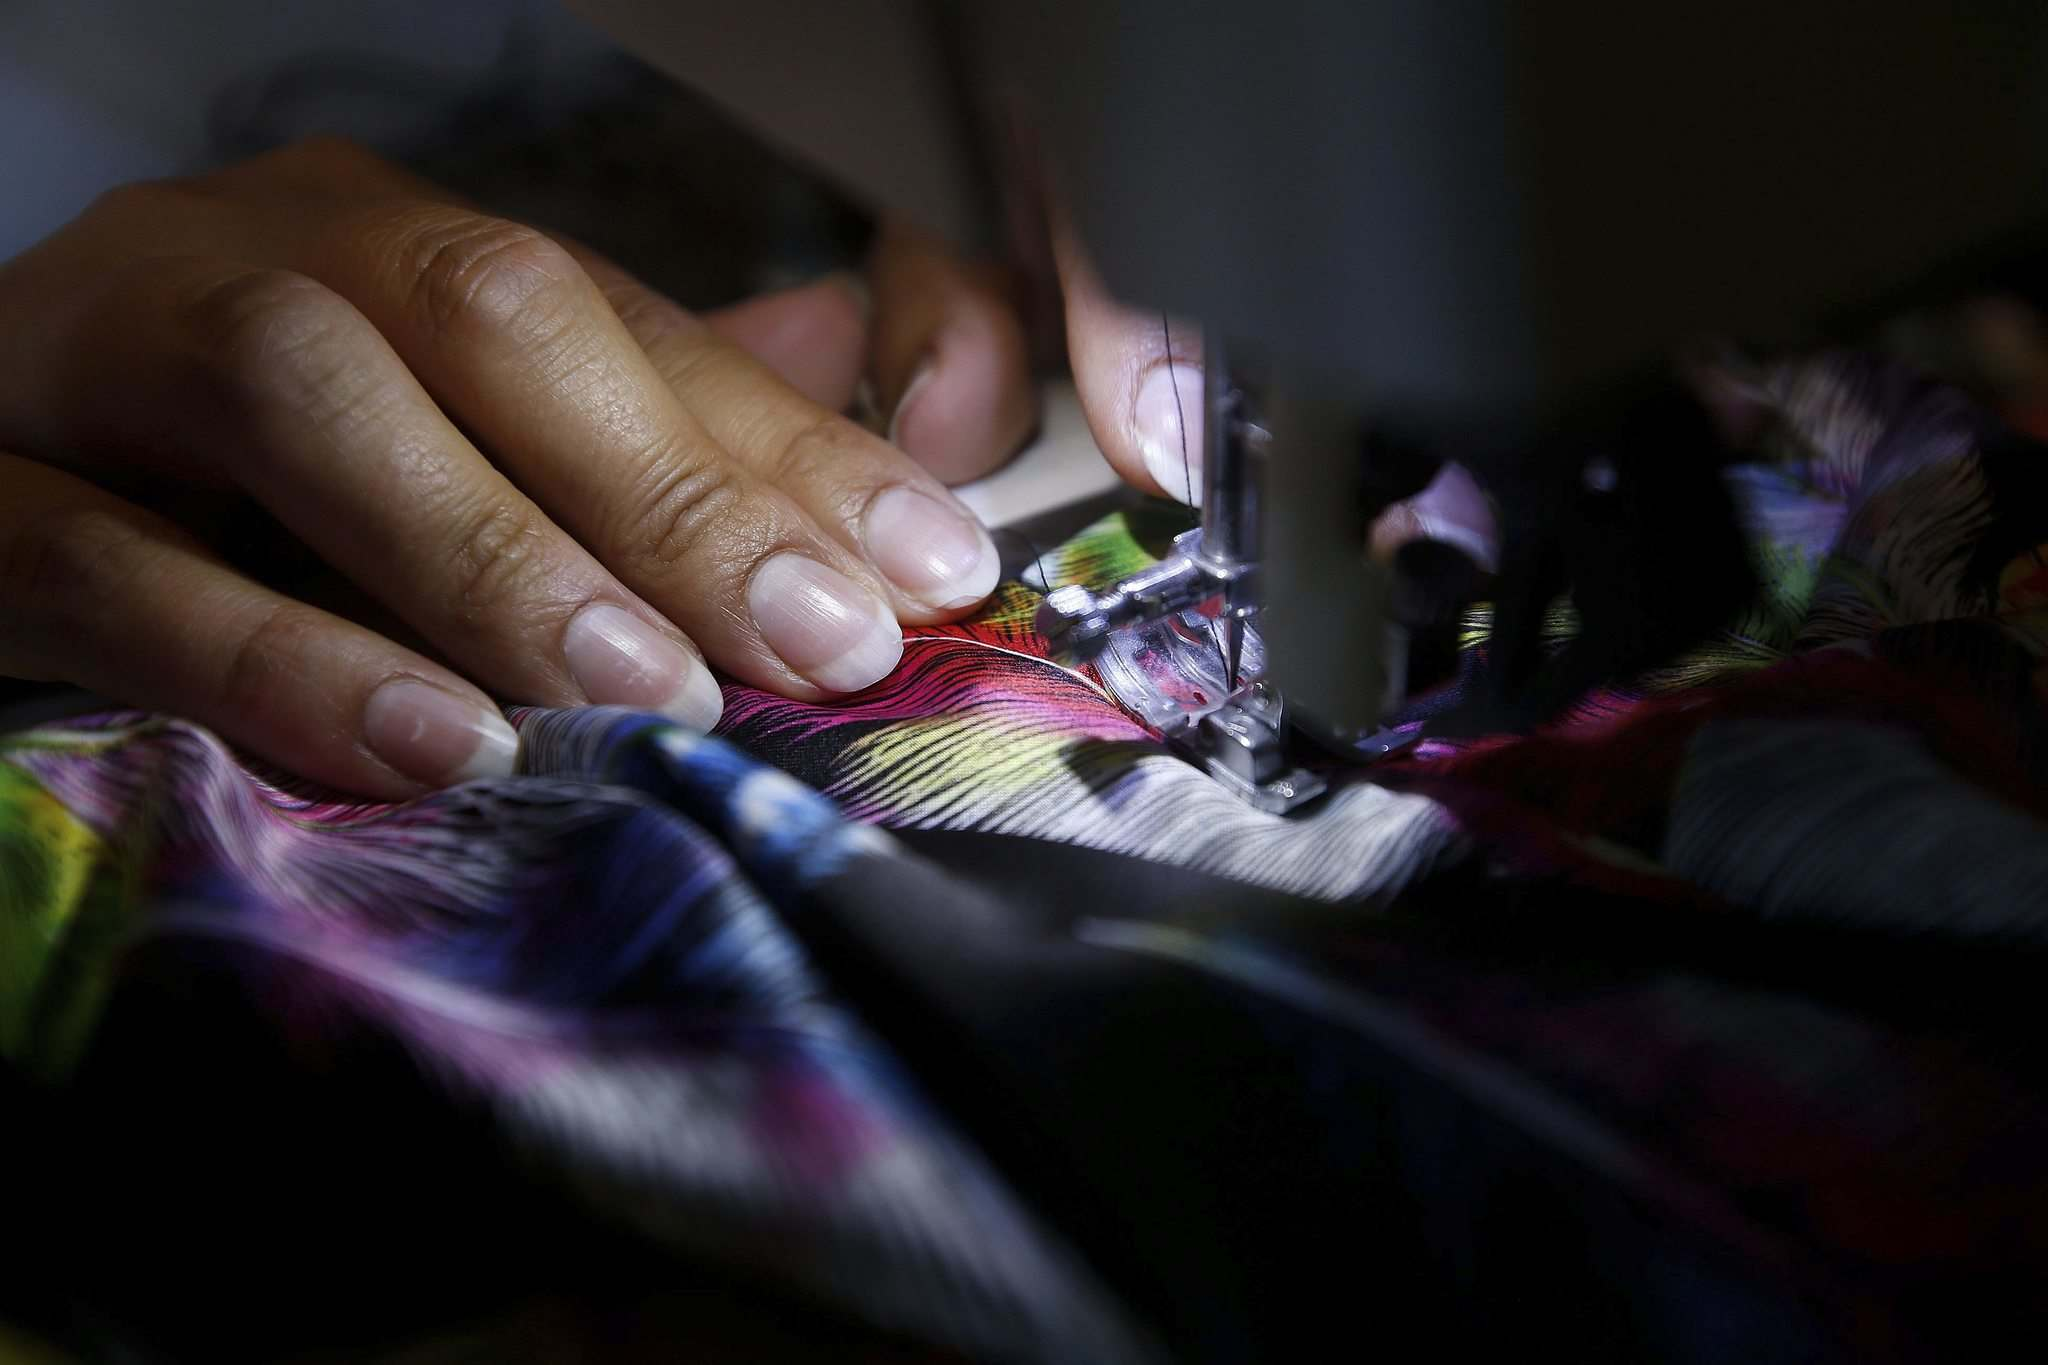 Ojibwa culture plays a big part in what fabric Sinclair purchases for the garments and blankets she designs and sells. (John Woods / Winnipeg Free Press)</p></p>